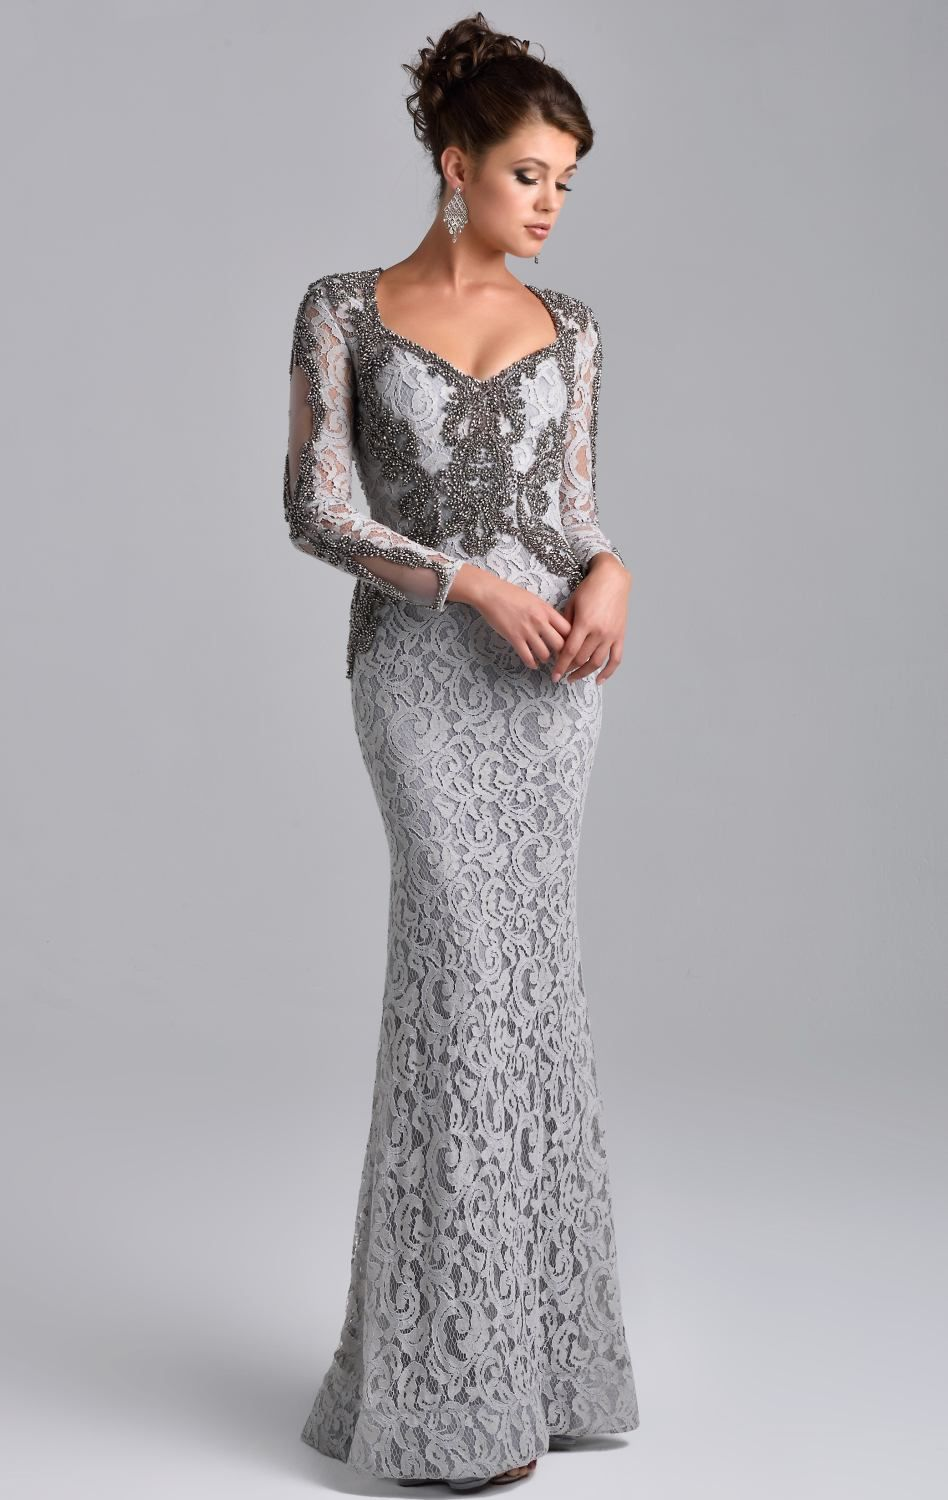 Laced Long Sleeved Gown by Nina Canacci | Smart fashion | Pinterest ...